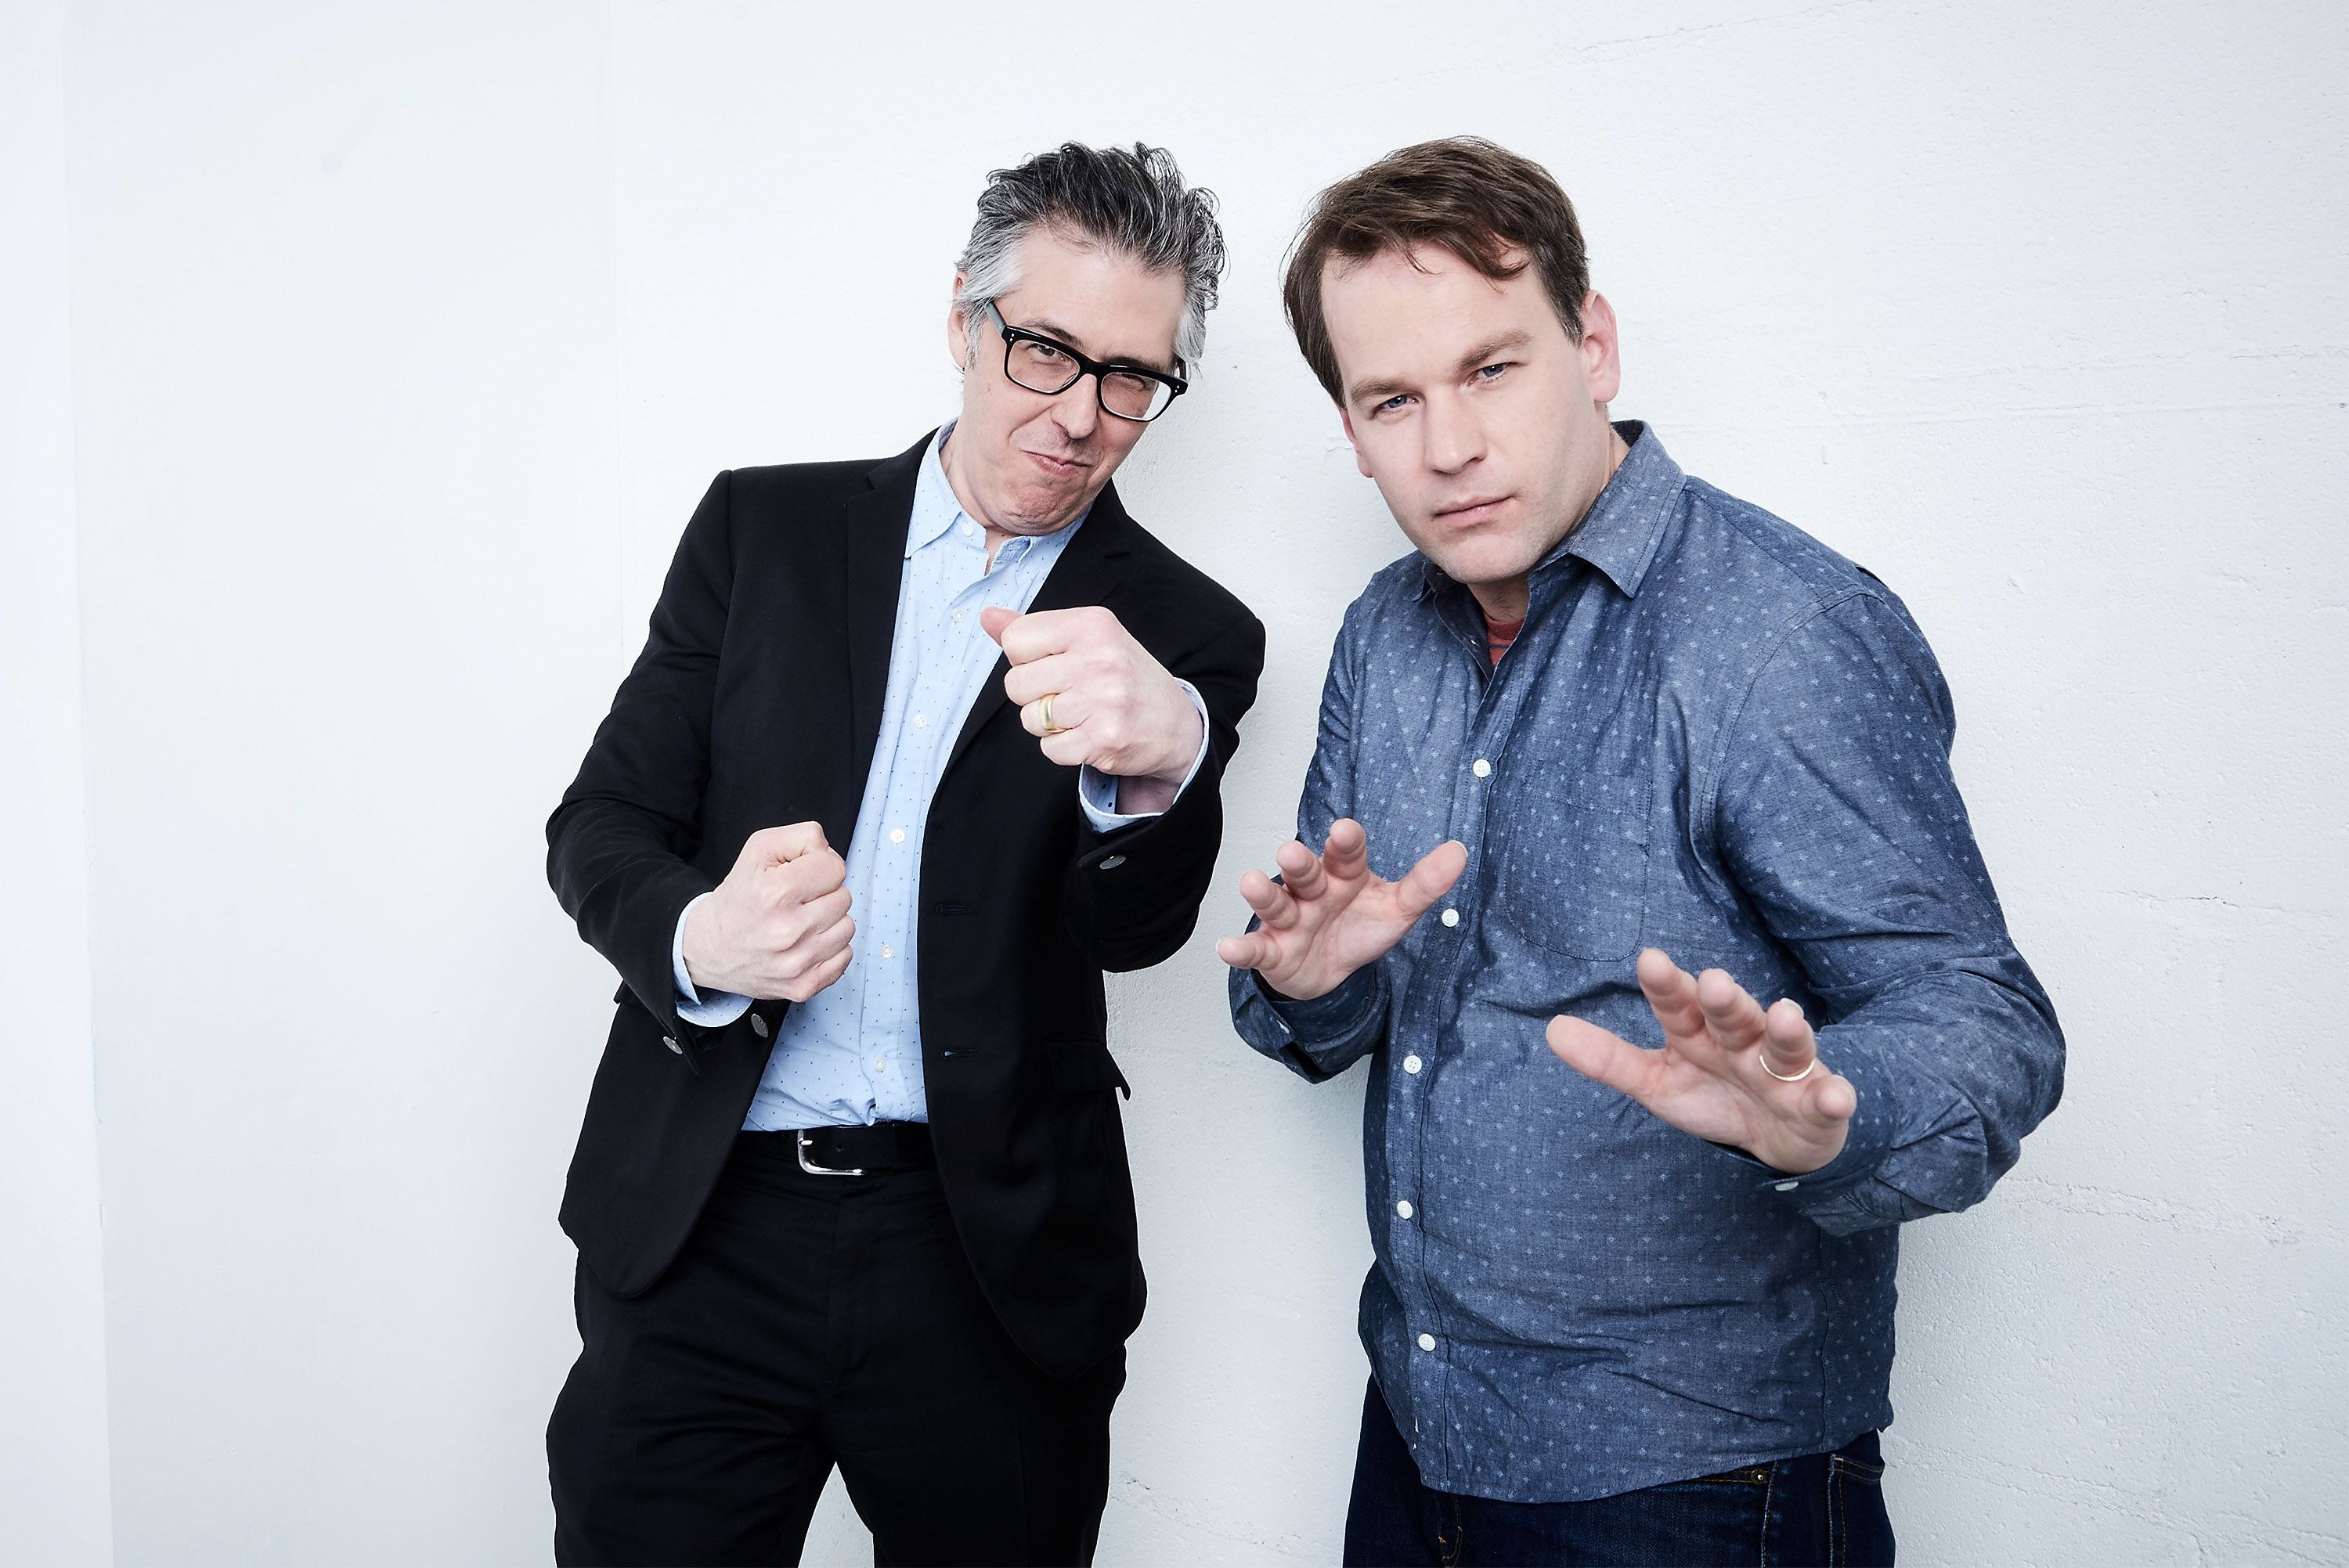 NEW YORK, NY - APRIL 18:  Producer Ira Glass (L) and actor, writer, and director Mike Birbiglia from 'Don't Think Twice' pose at the Tribeca Film Festival Getty Images Studio on April 18, 2016 in New York City.  (Photo by Larry Busacca/Getty Images for the 2016 Tribeca Film Festival )